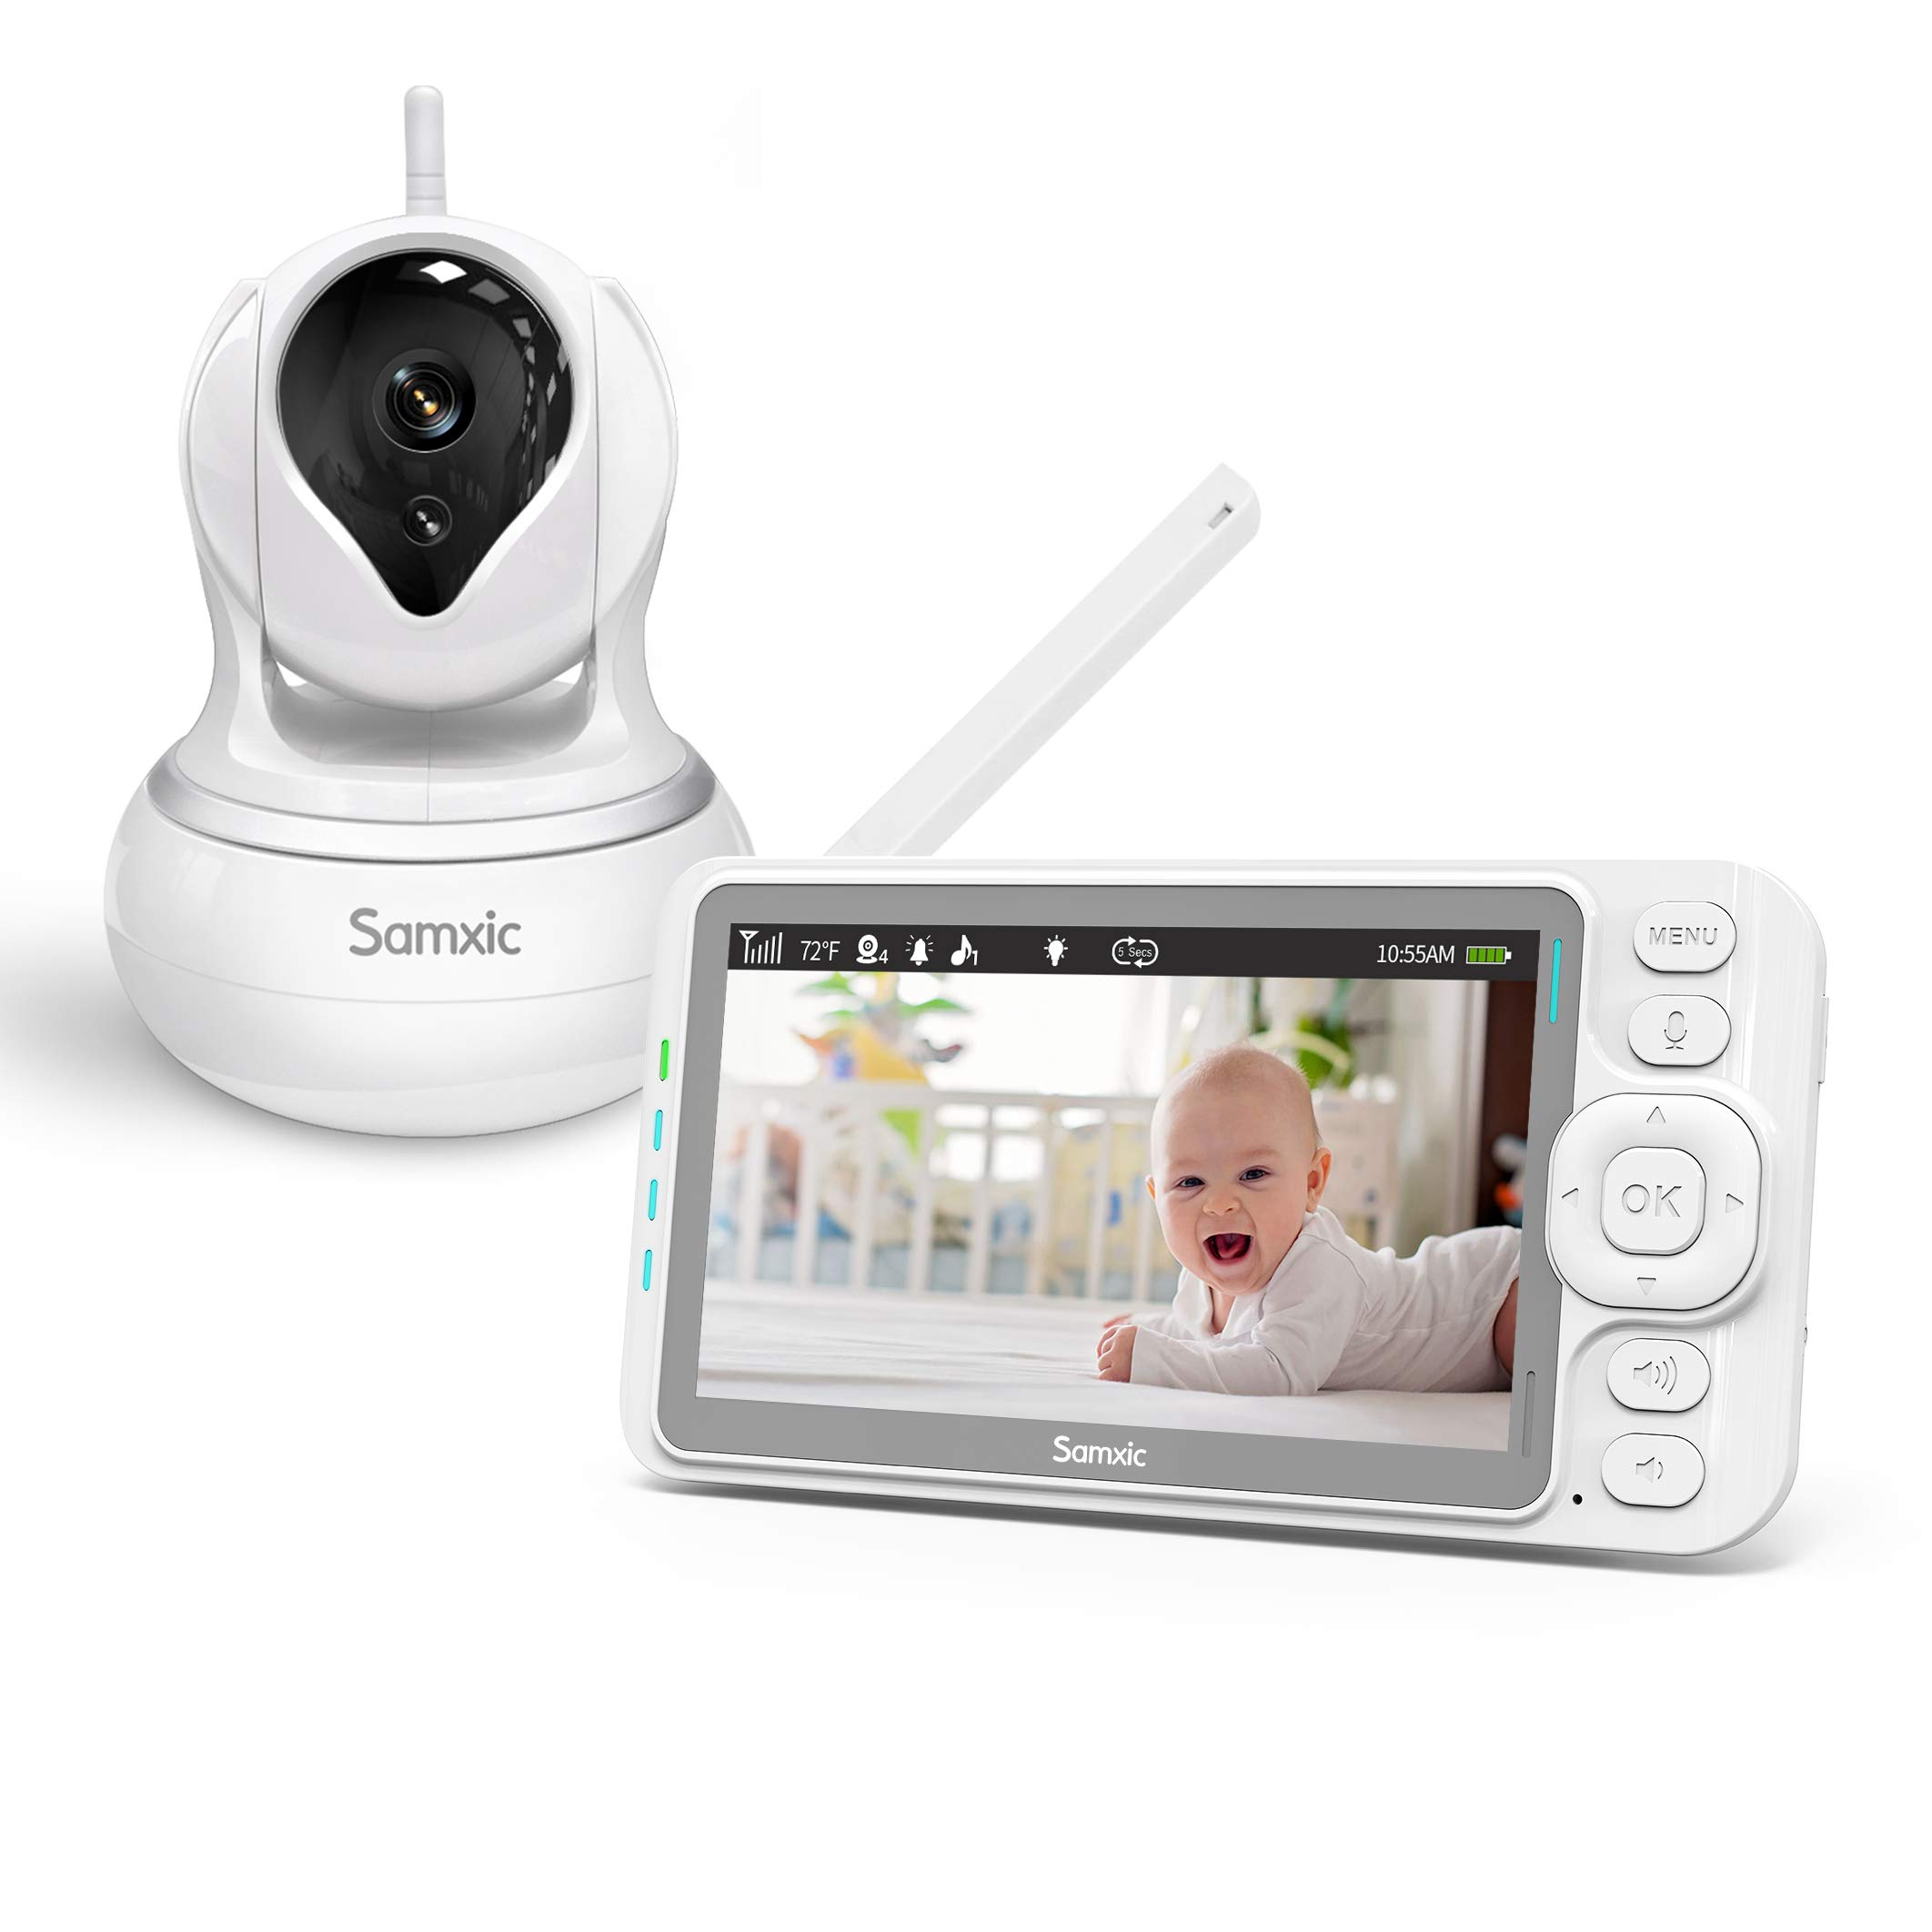 Samxic Video Baby Monitor with 720P Camera, 5 Inches Display, Crying & Temperature Alert, Two-Way Talk, No Glow Night Vision, Remote Pan & Tilt & Zoom, High Privacy Baby Monitor System by Samxic (Image #1)